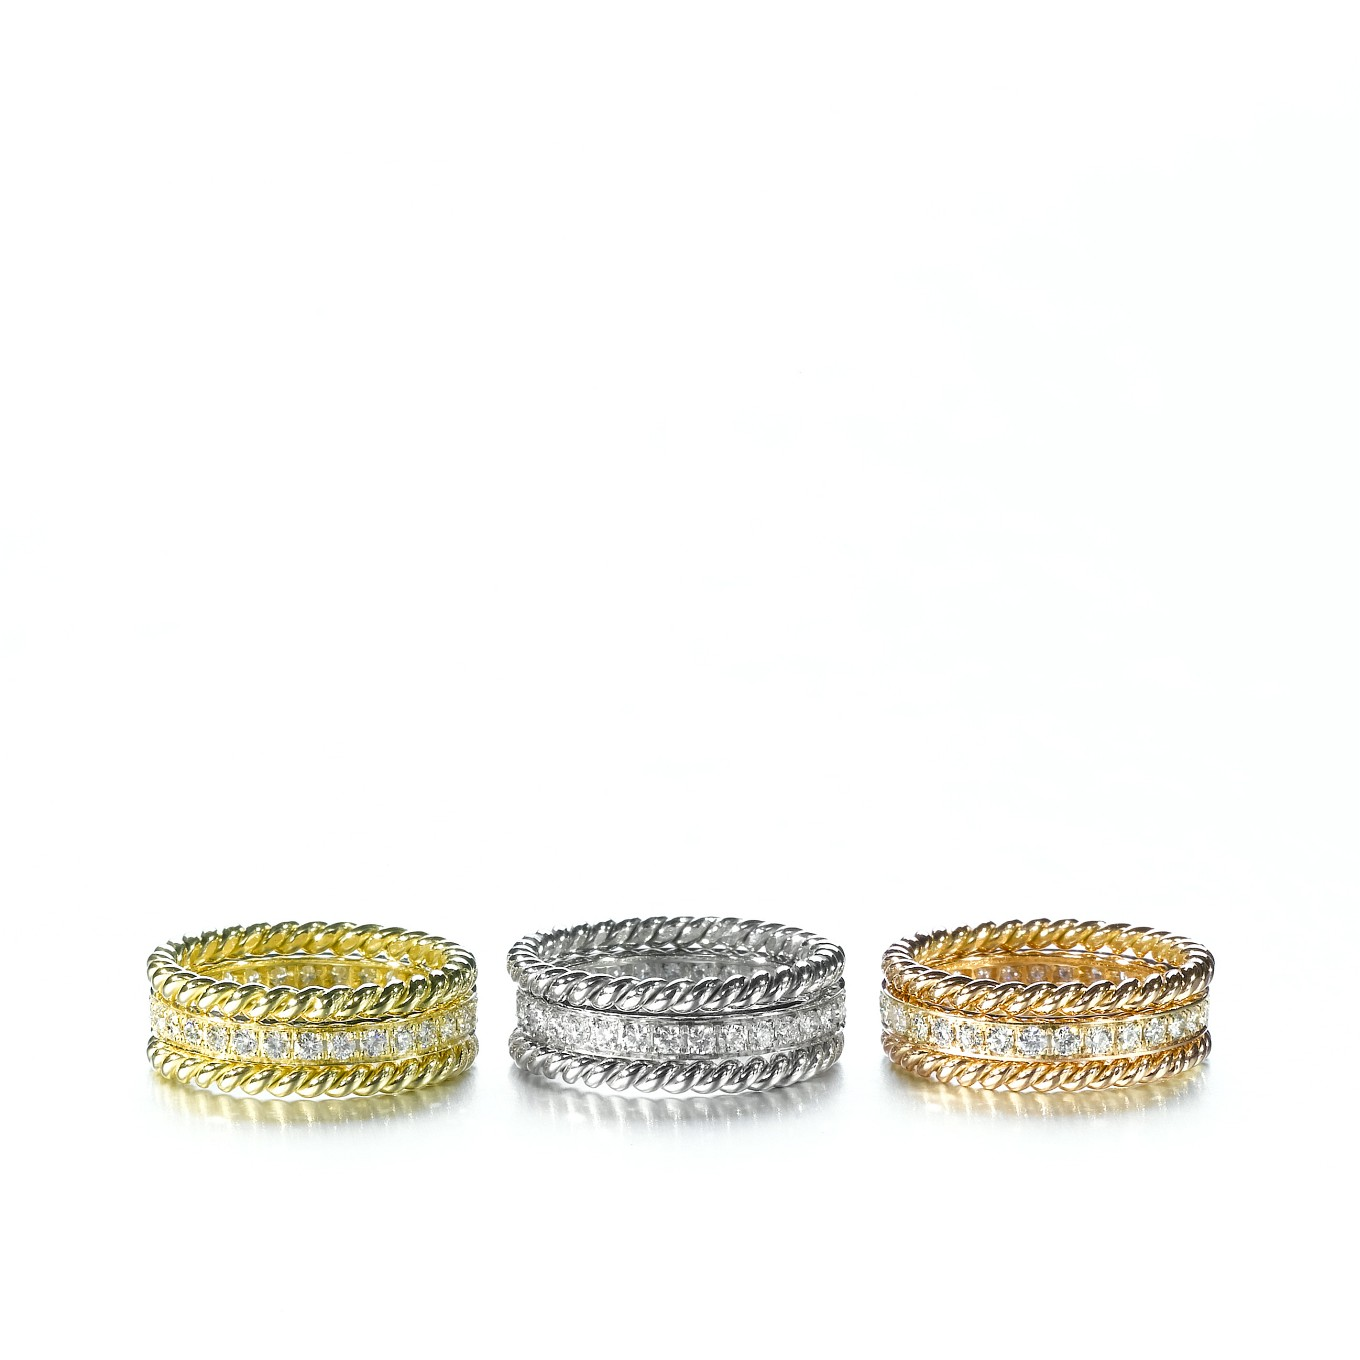 A CLASSIC TRIO OF BRAIDED & DIAMOND ETERNITY BANDS IN YELLOW, WHITE, & ROSE GOLD